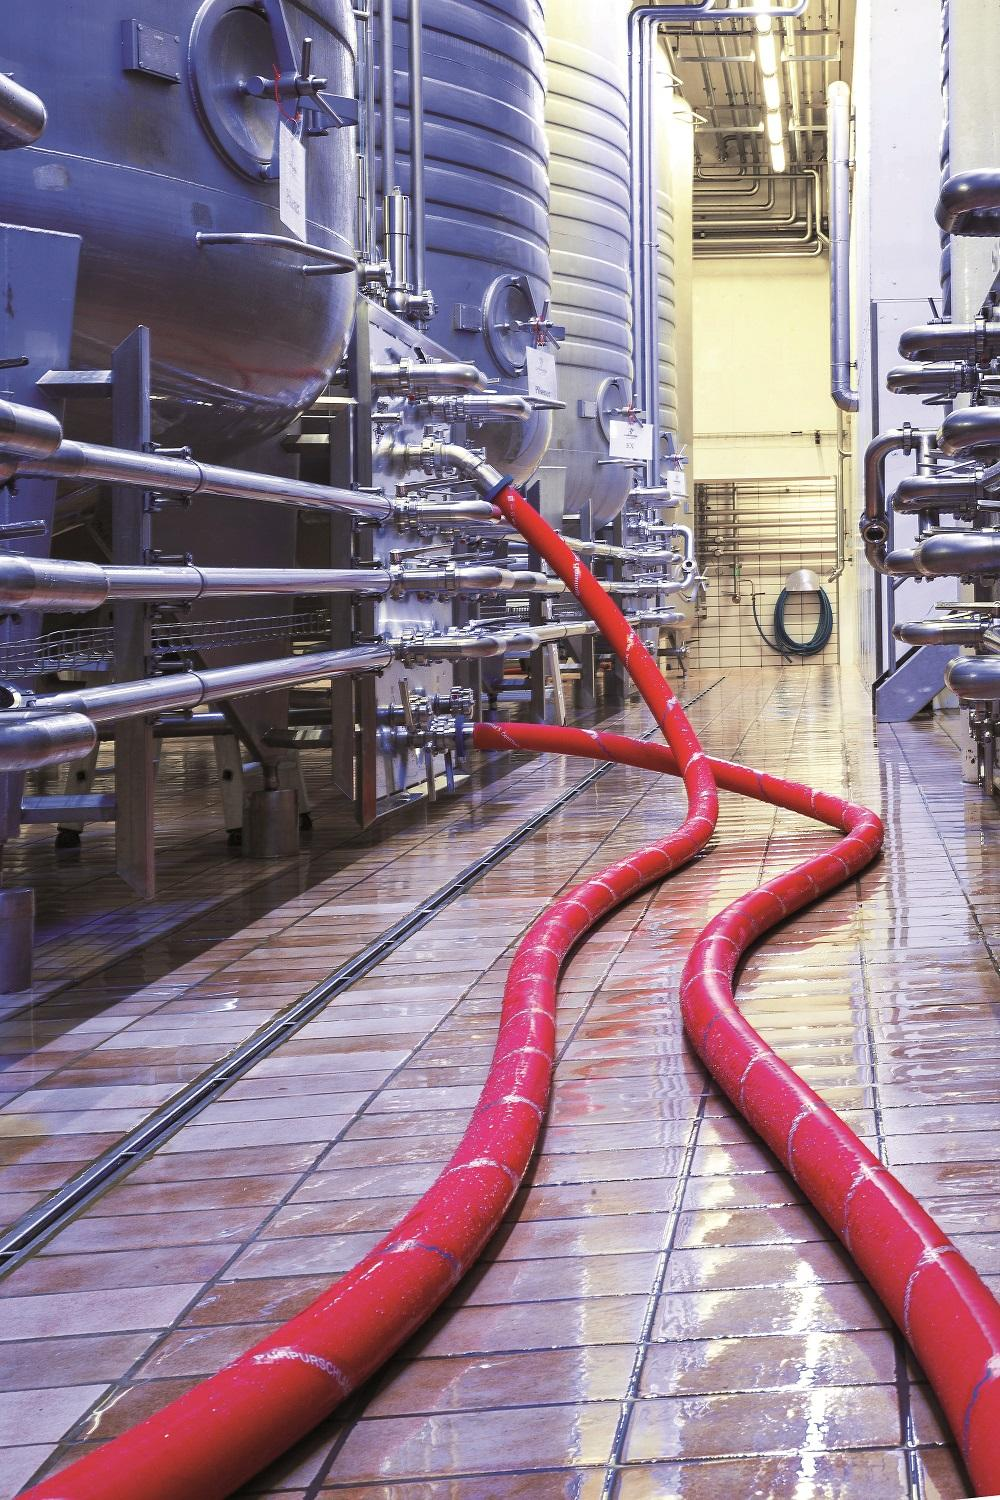 In dairies, breweries, wineries and in the manufacture of fruit juices and soft drinks, the food and beverage hoses from ContiTech contribute to a hygienically flawless production process. Photo: ContiTech